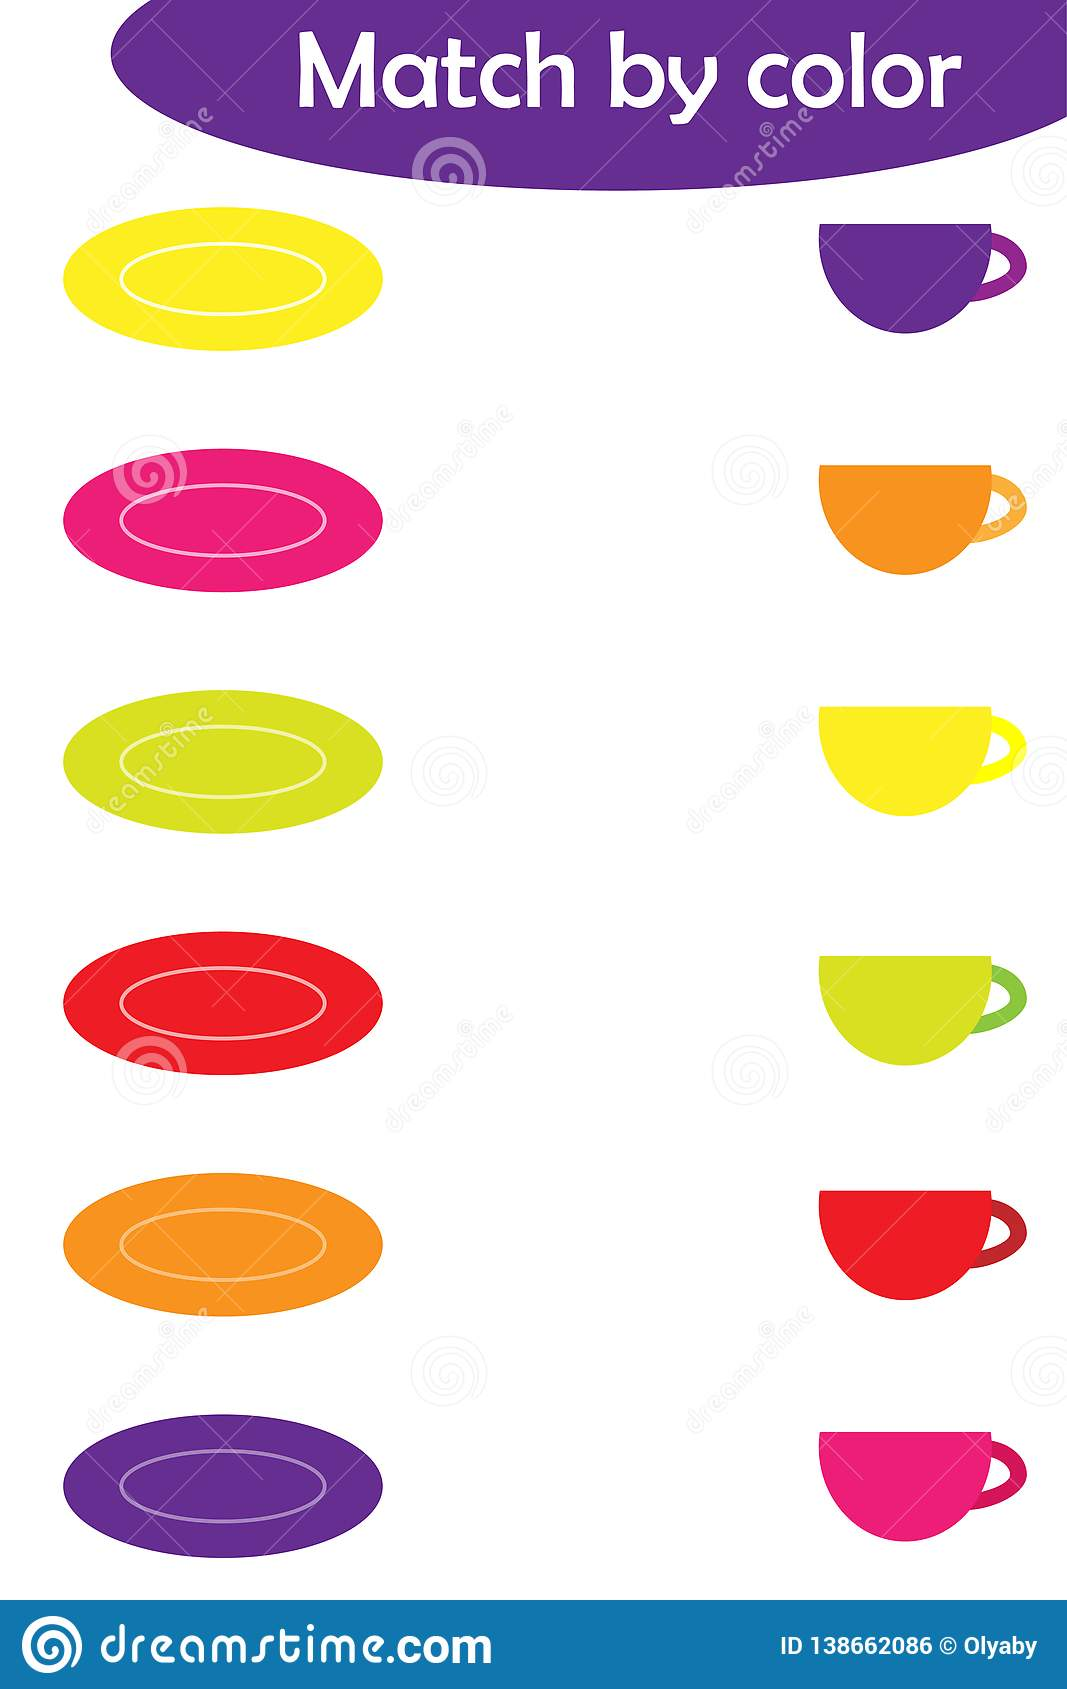 Matching Game For Children Connect Colorful Plates With